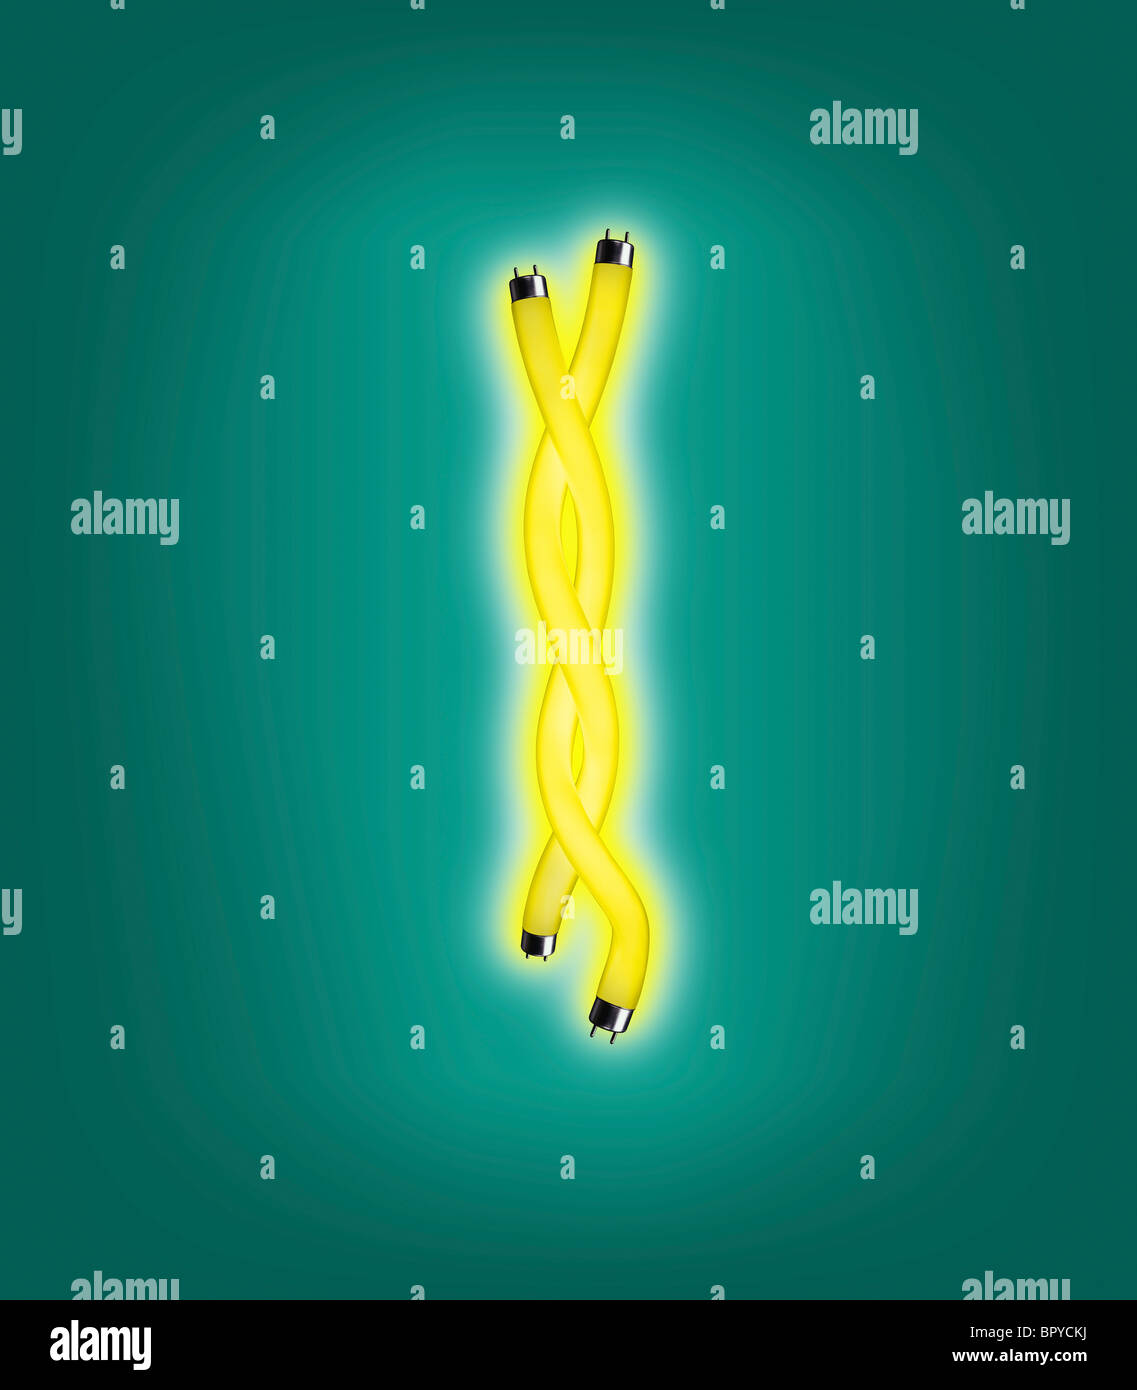 yellow fluorescent light shaped like a DNA strand against a teal background - Stock Image